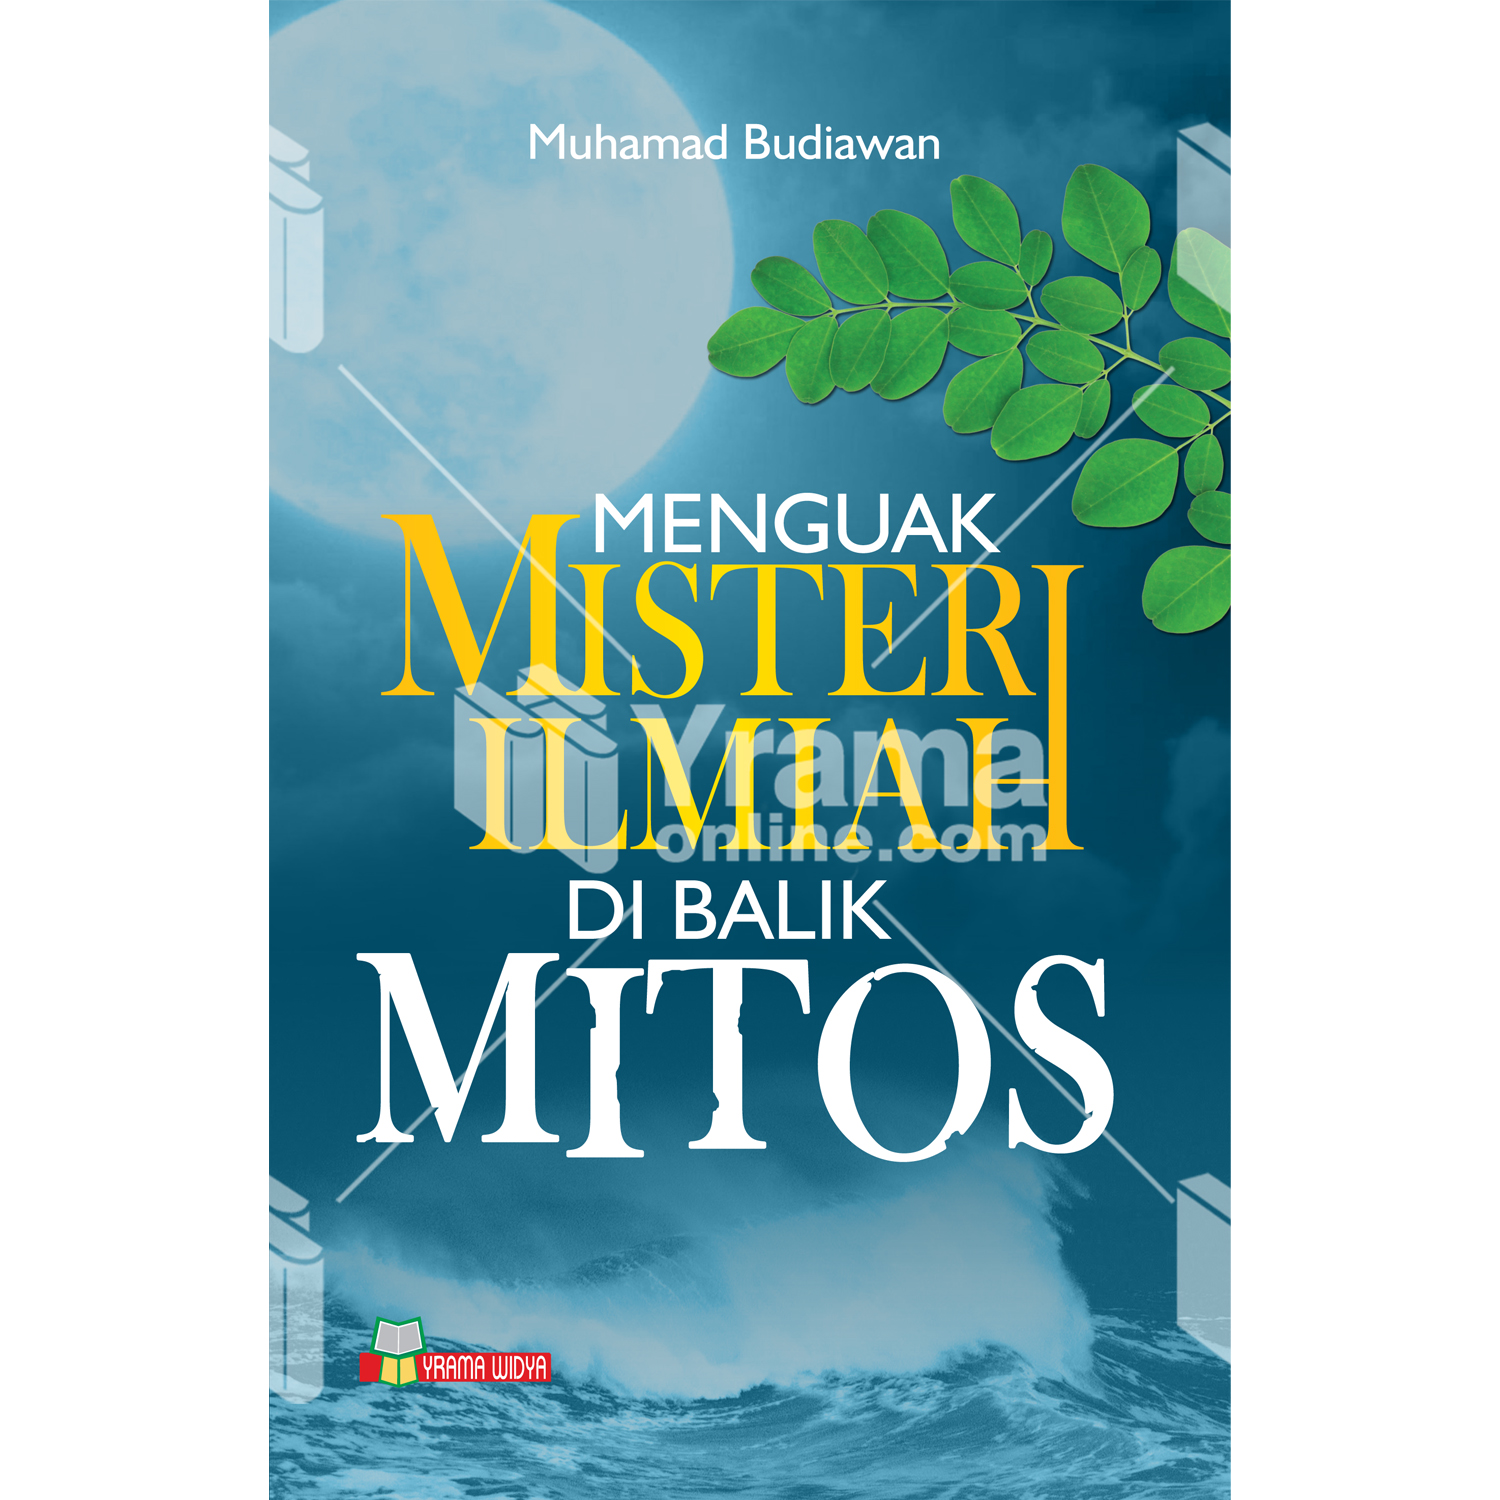 buku menguak misteri ilmiah di balik mitos